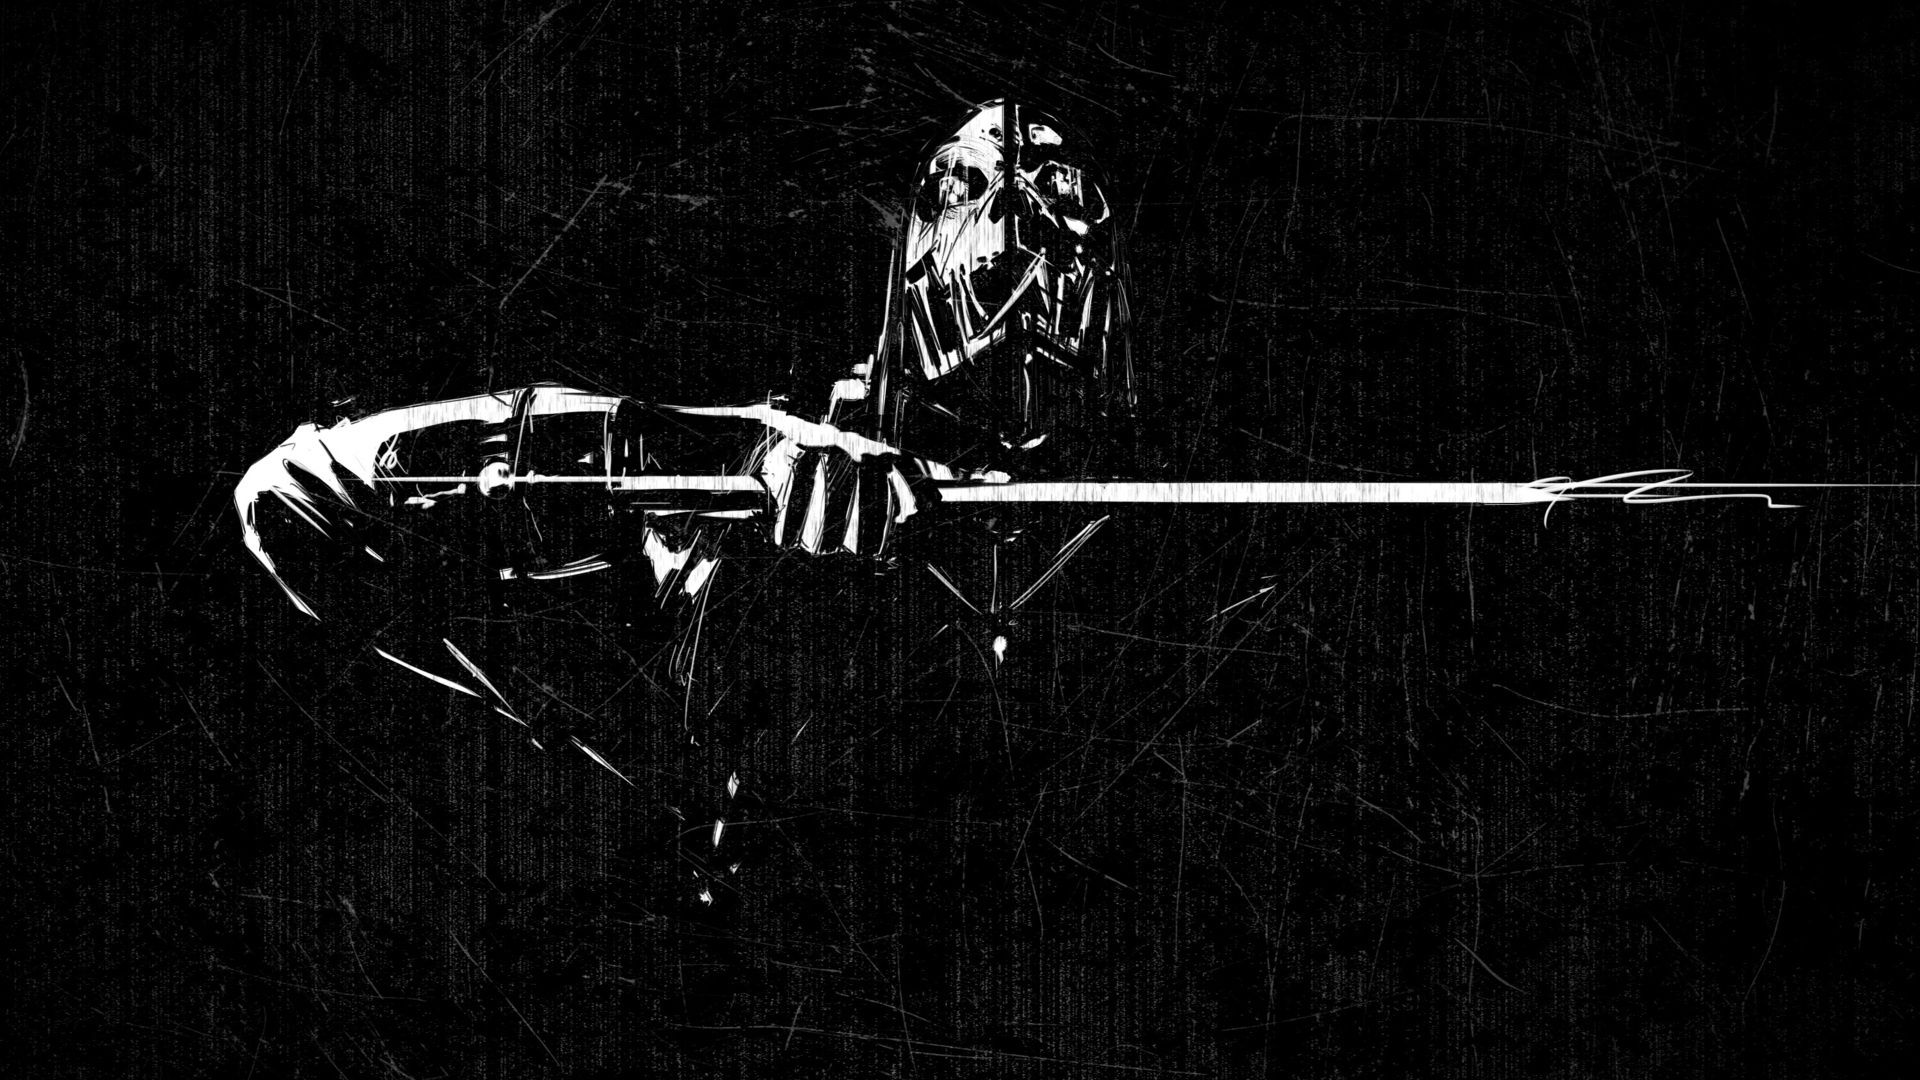 Dishonored Stealth Action Adventure Black Wallpaper Dishonored Gaming Wallpapers Best Gaming Wallpapers